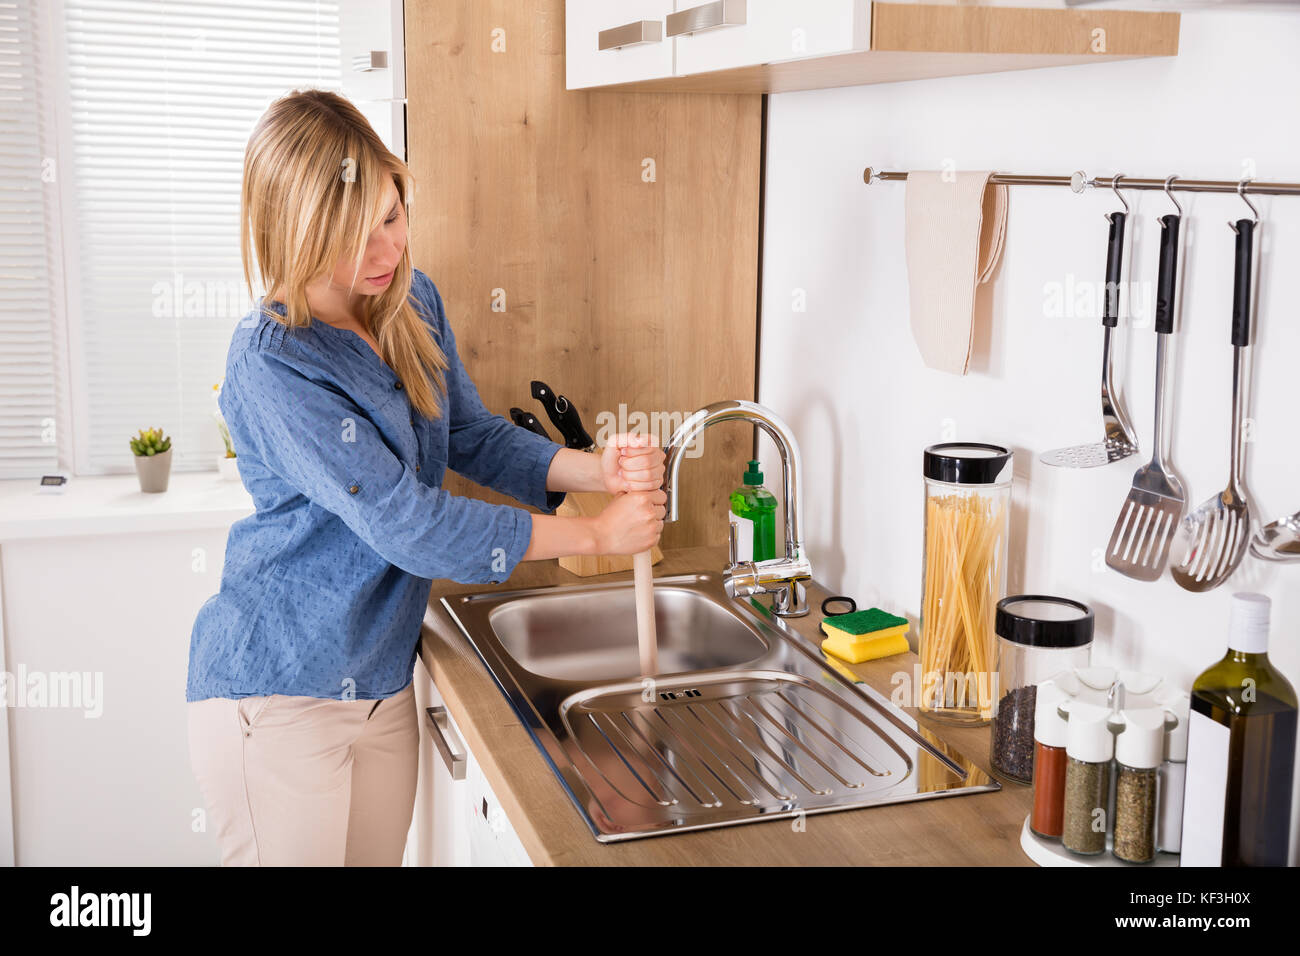 Kitchen Sink Drain Stock Photos & Kitchen Sink Drain Stock Images ...